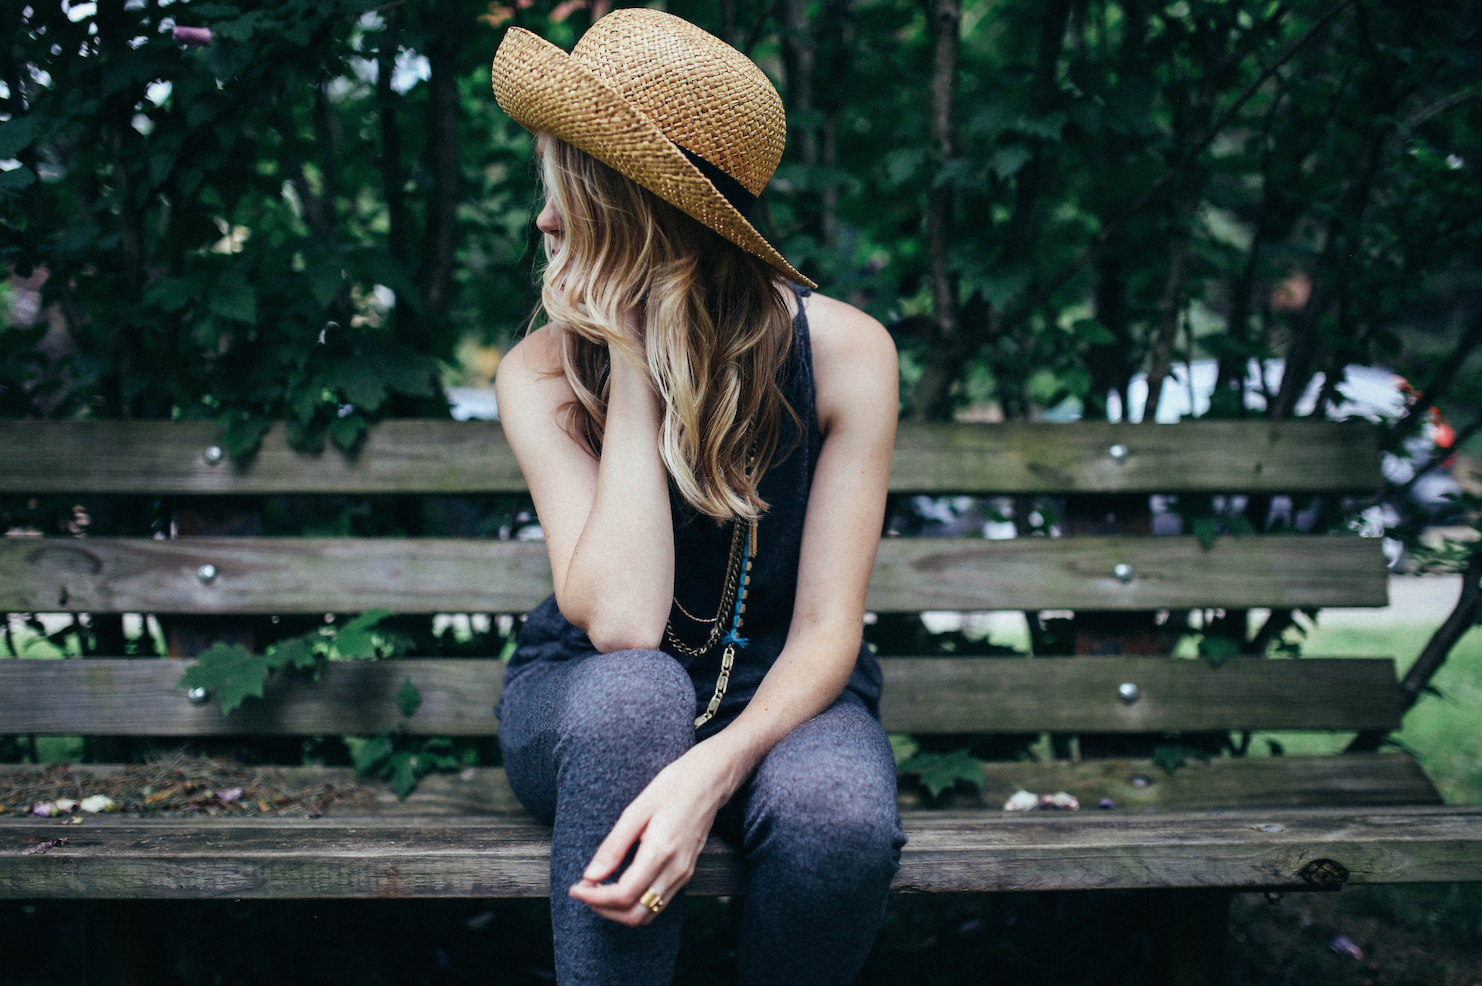 Screen Shot 2015-01-21 at 1.09.07 PM